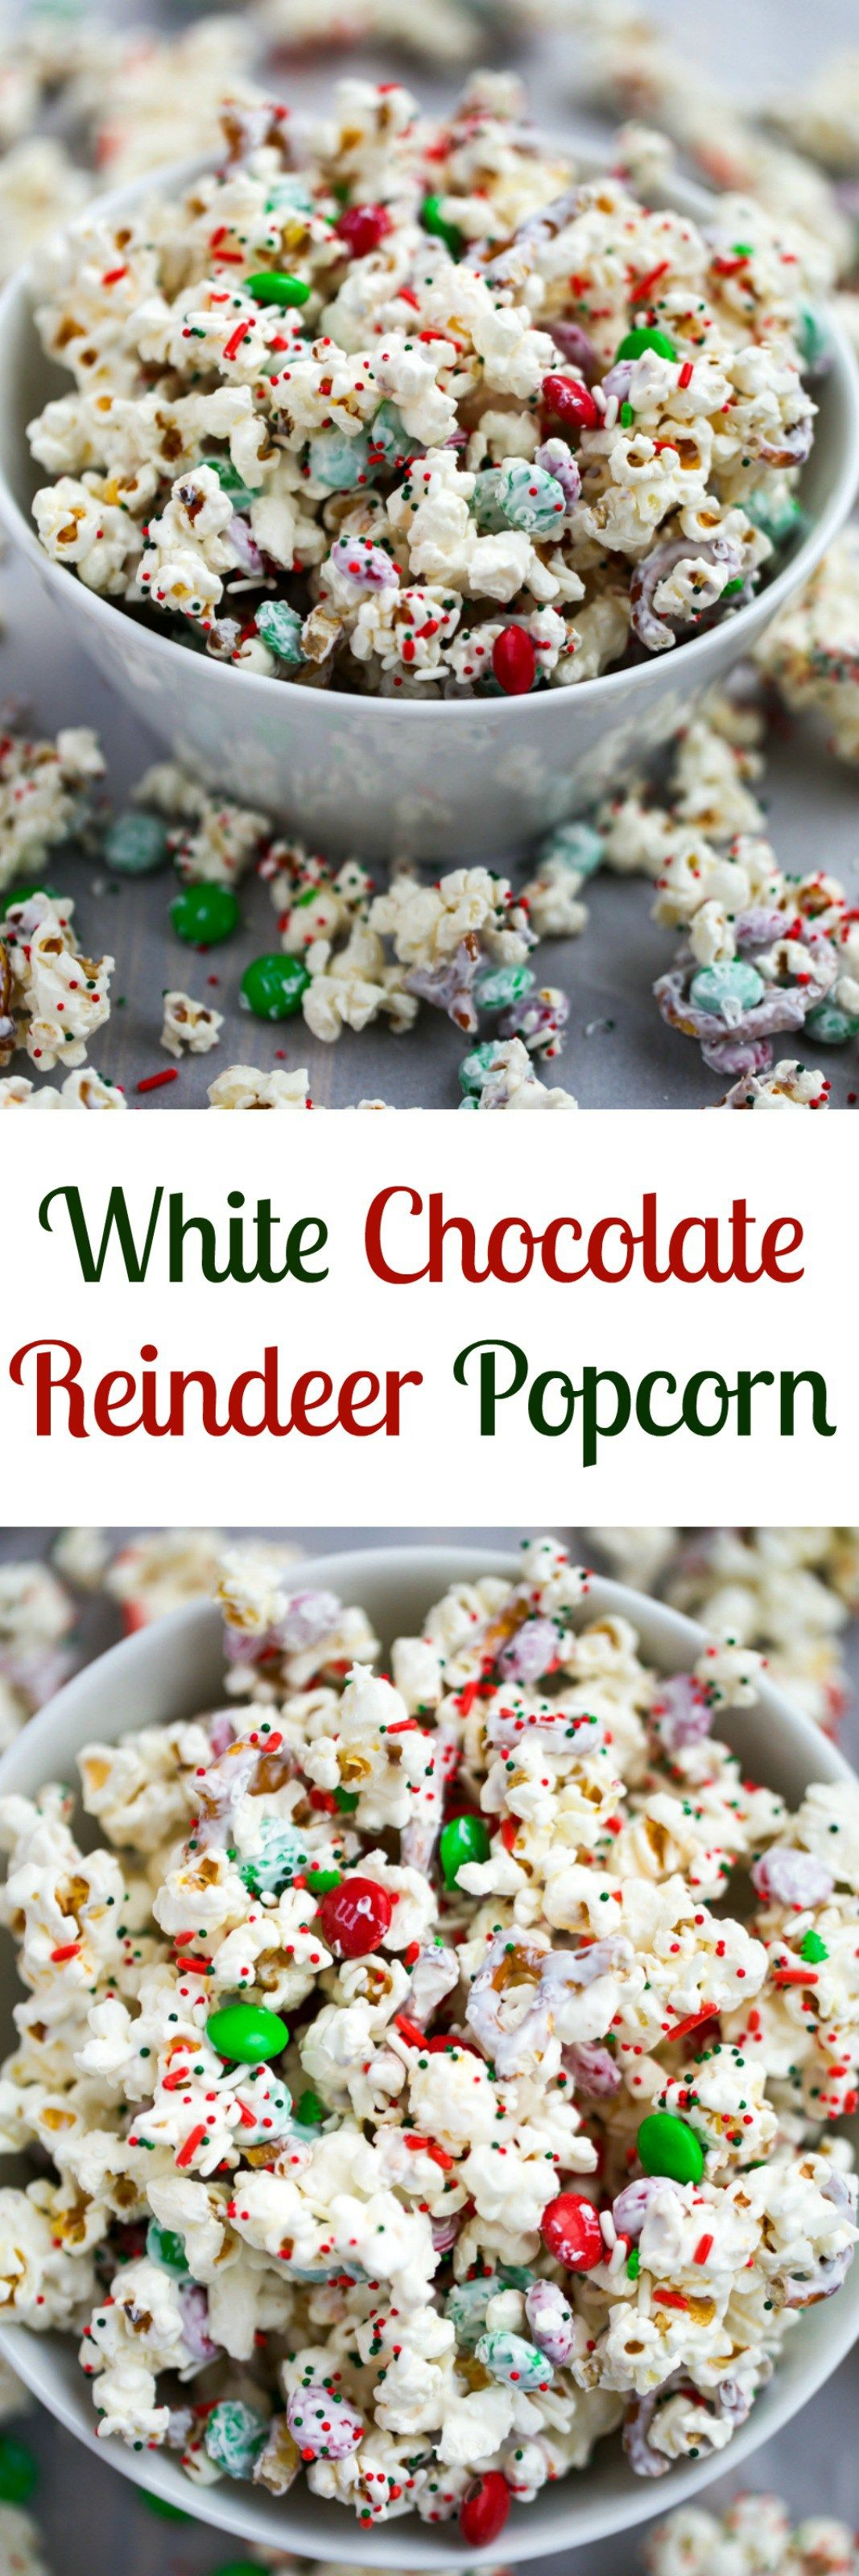 White Chocolate Reindeer Popcorn - Two Sisters Kitchens #christmas